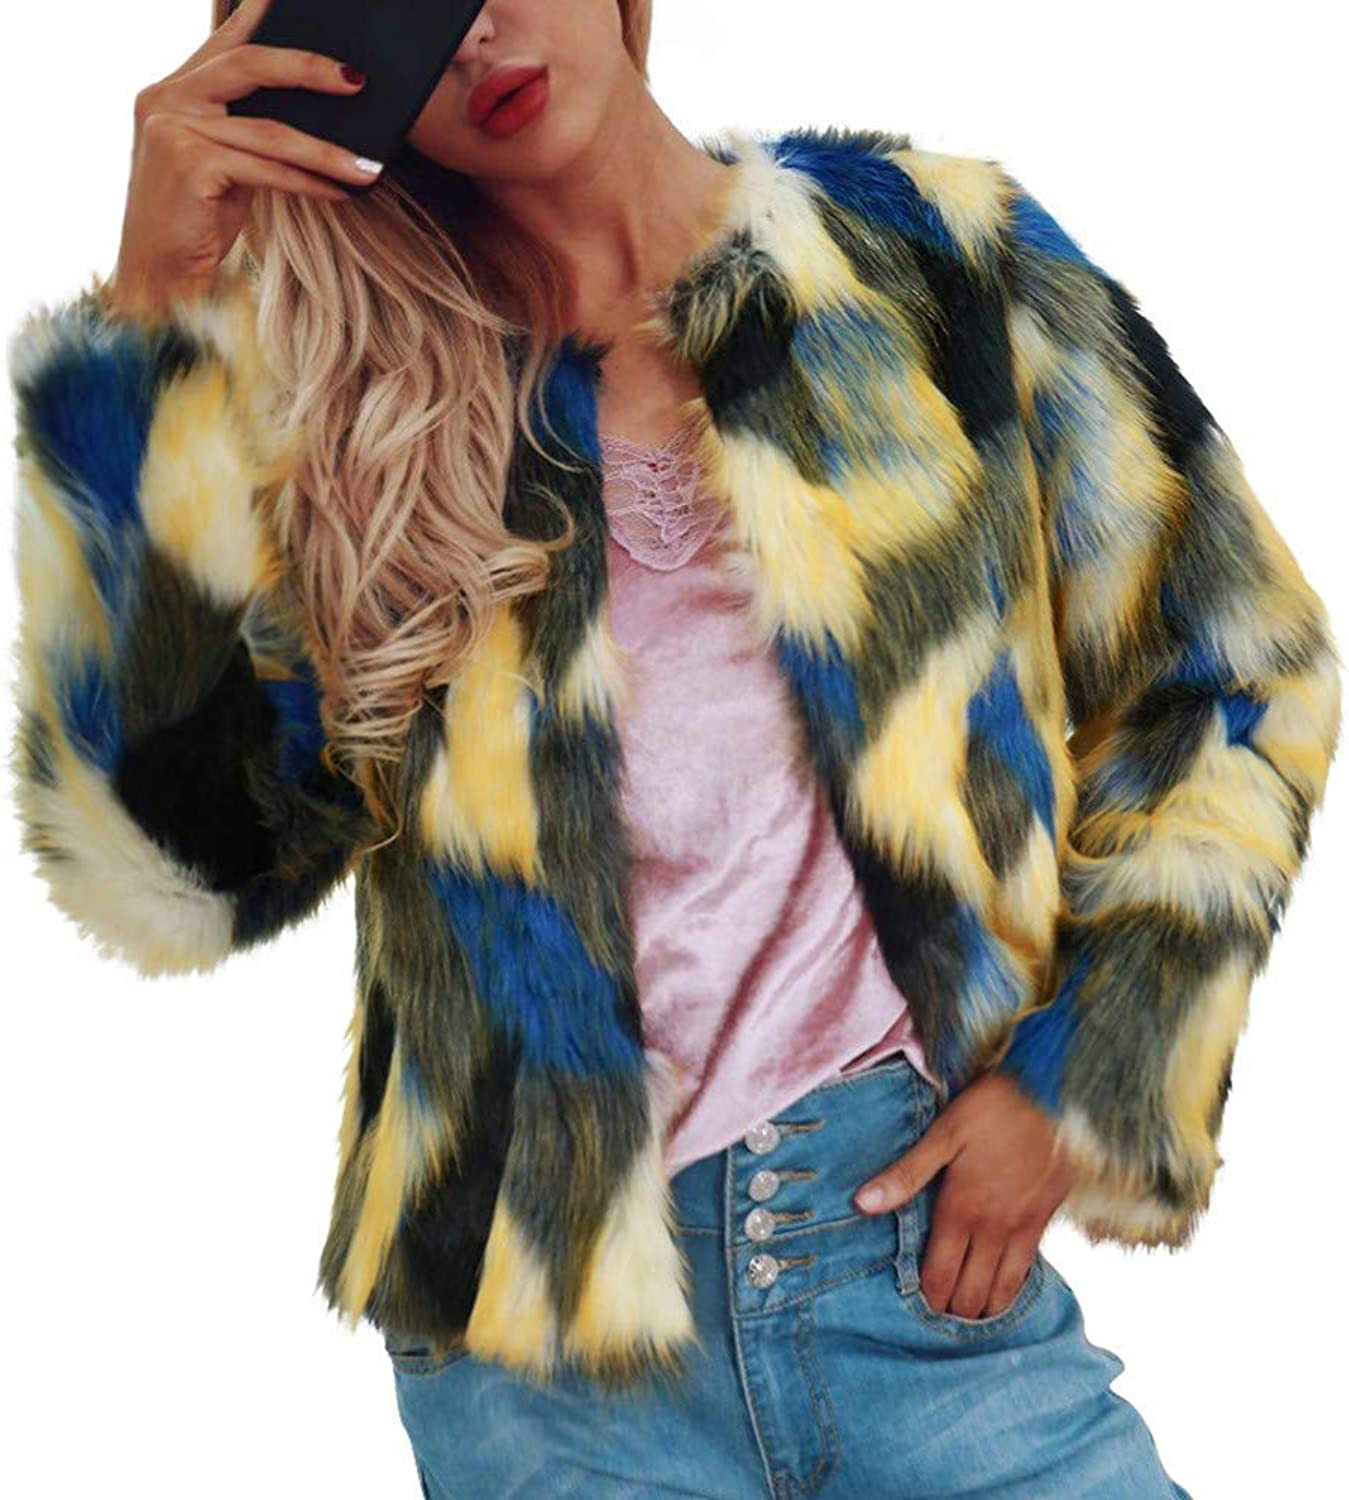 Ladies Coat Ladies Warm Faux Fur Coat Jacket Winter Gradient color Parka Outerwear Patchwork Pattern Casual Fashion Overcoat Long Sleeve Hipster Coat (color   Mehrfarbig, Size   3XL)